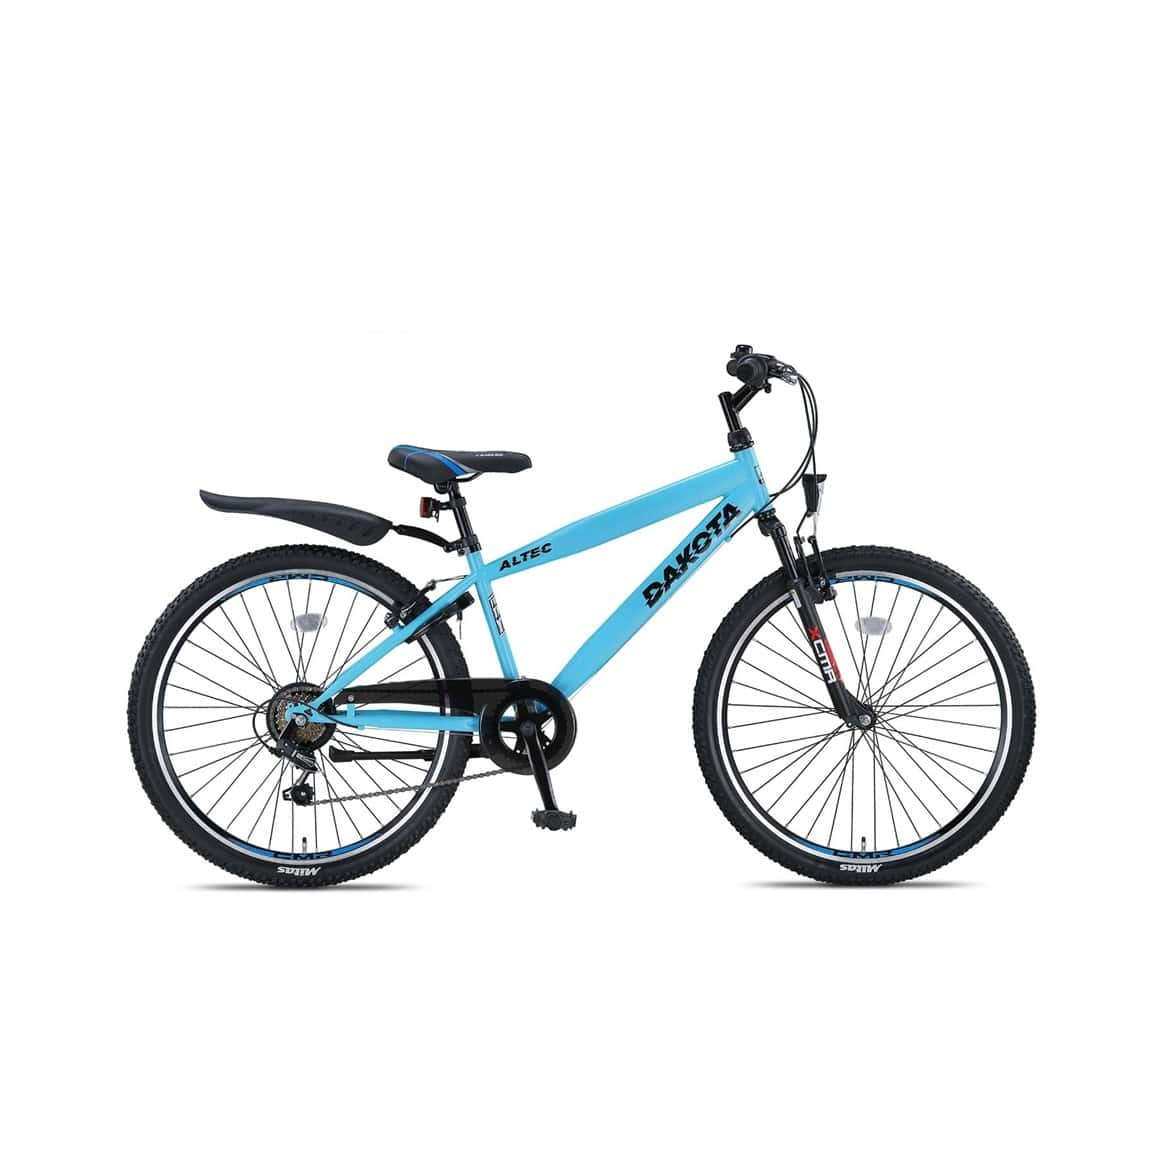 Altec-Dakota-26inch-Jongensfiets-7speed-2019-Neon-Blue-Nieuw-min